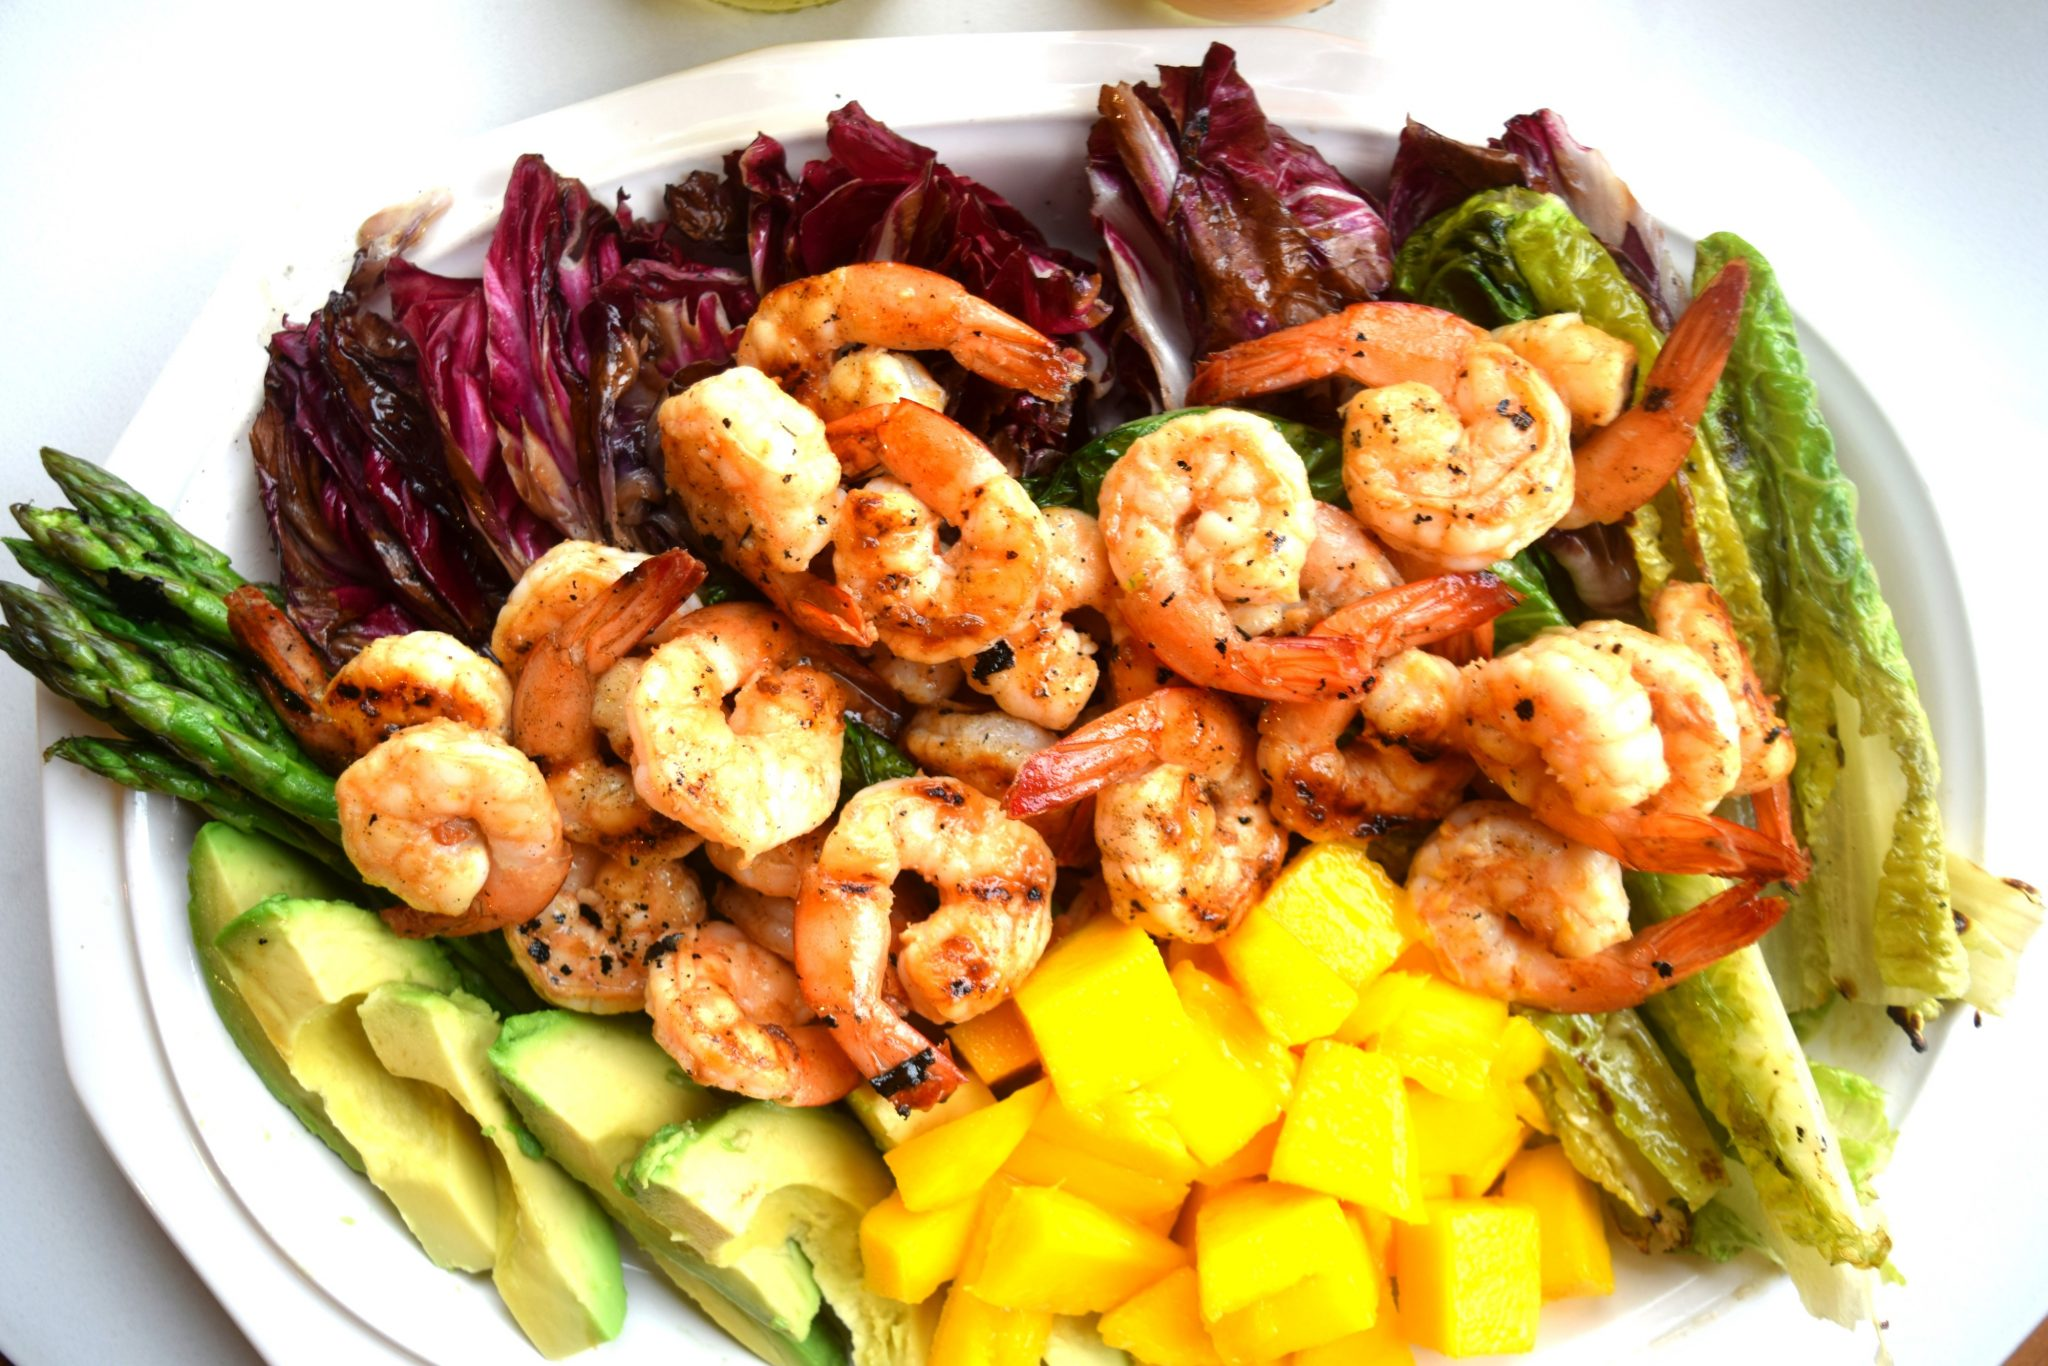 Grilled Radicchio and Romaine Salad with Grilled Shrimp and Mango Dressing